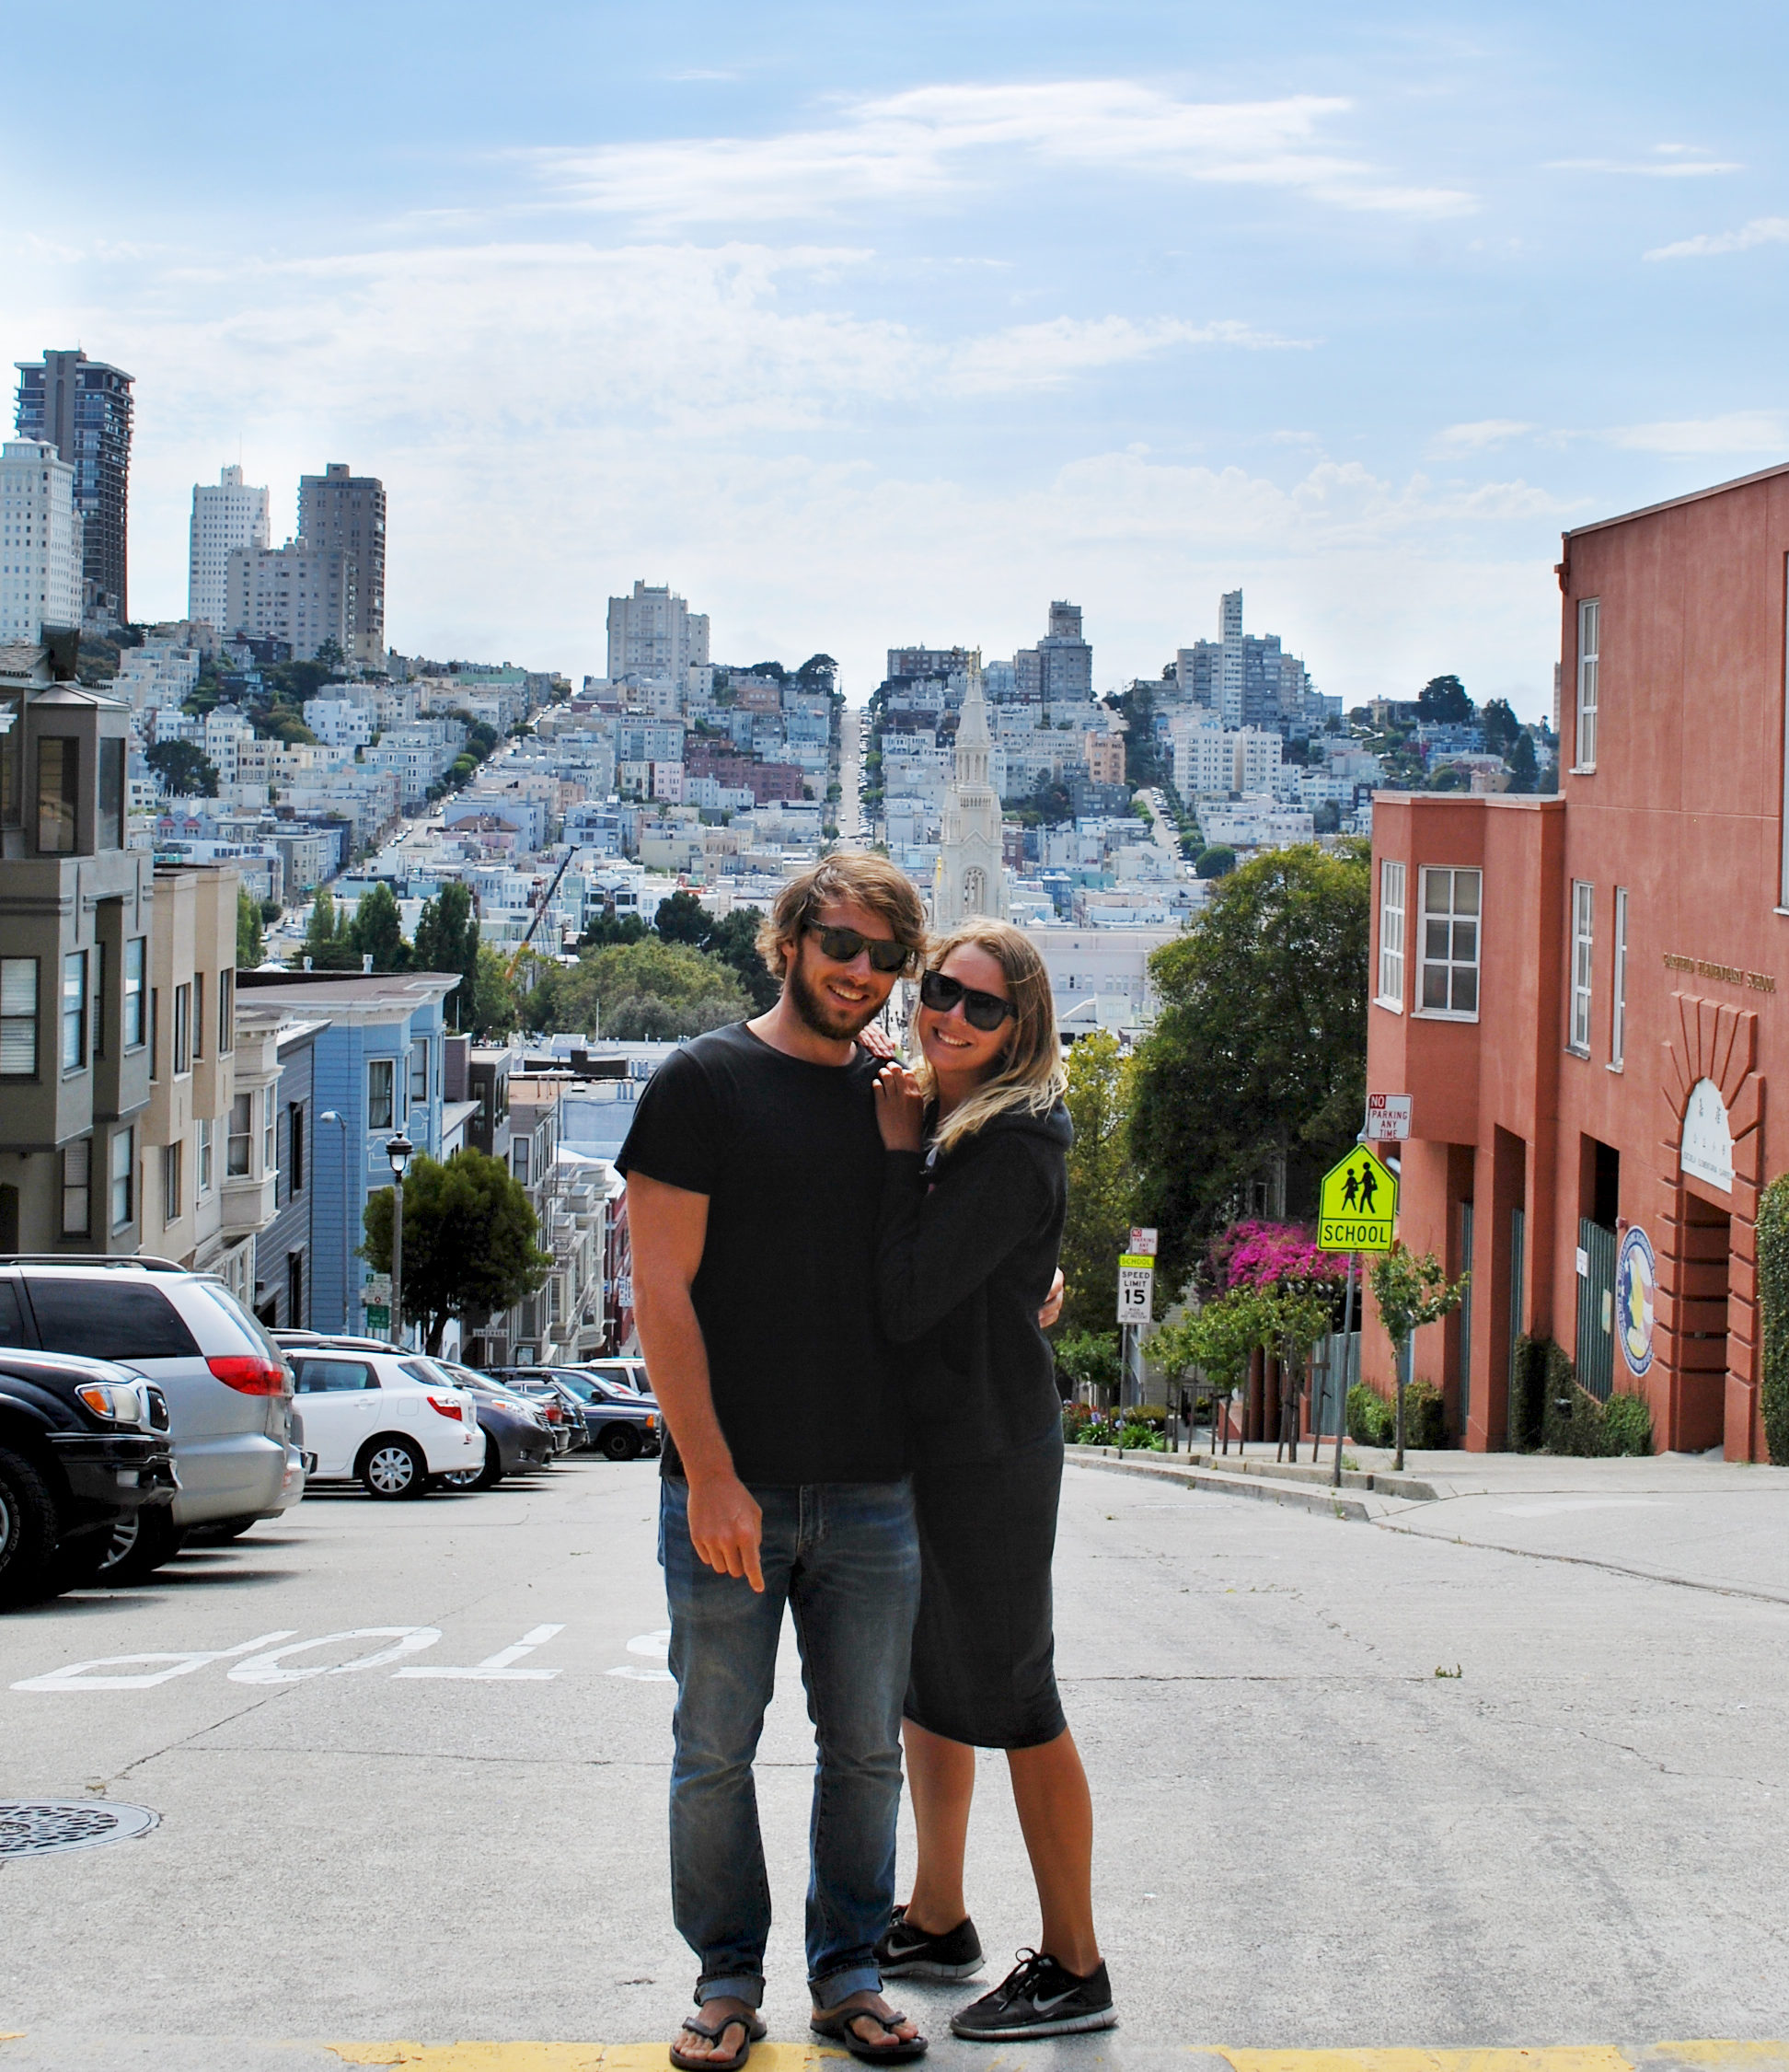 One day in San Francisco California